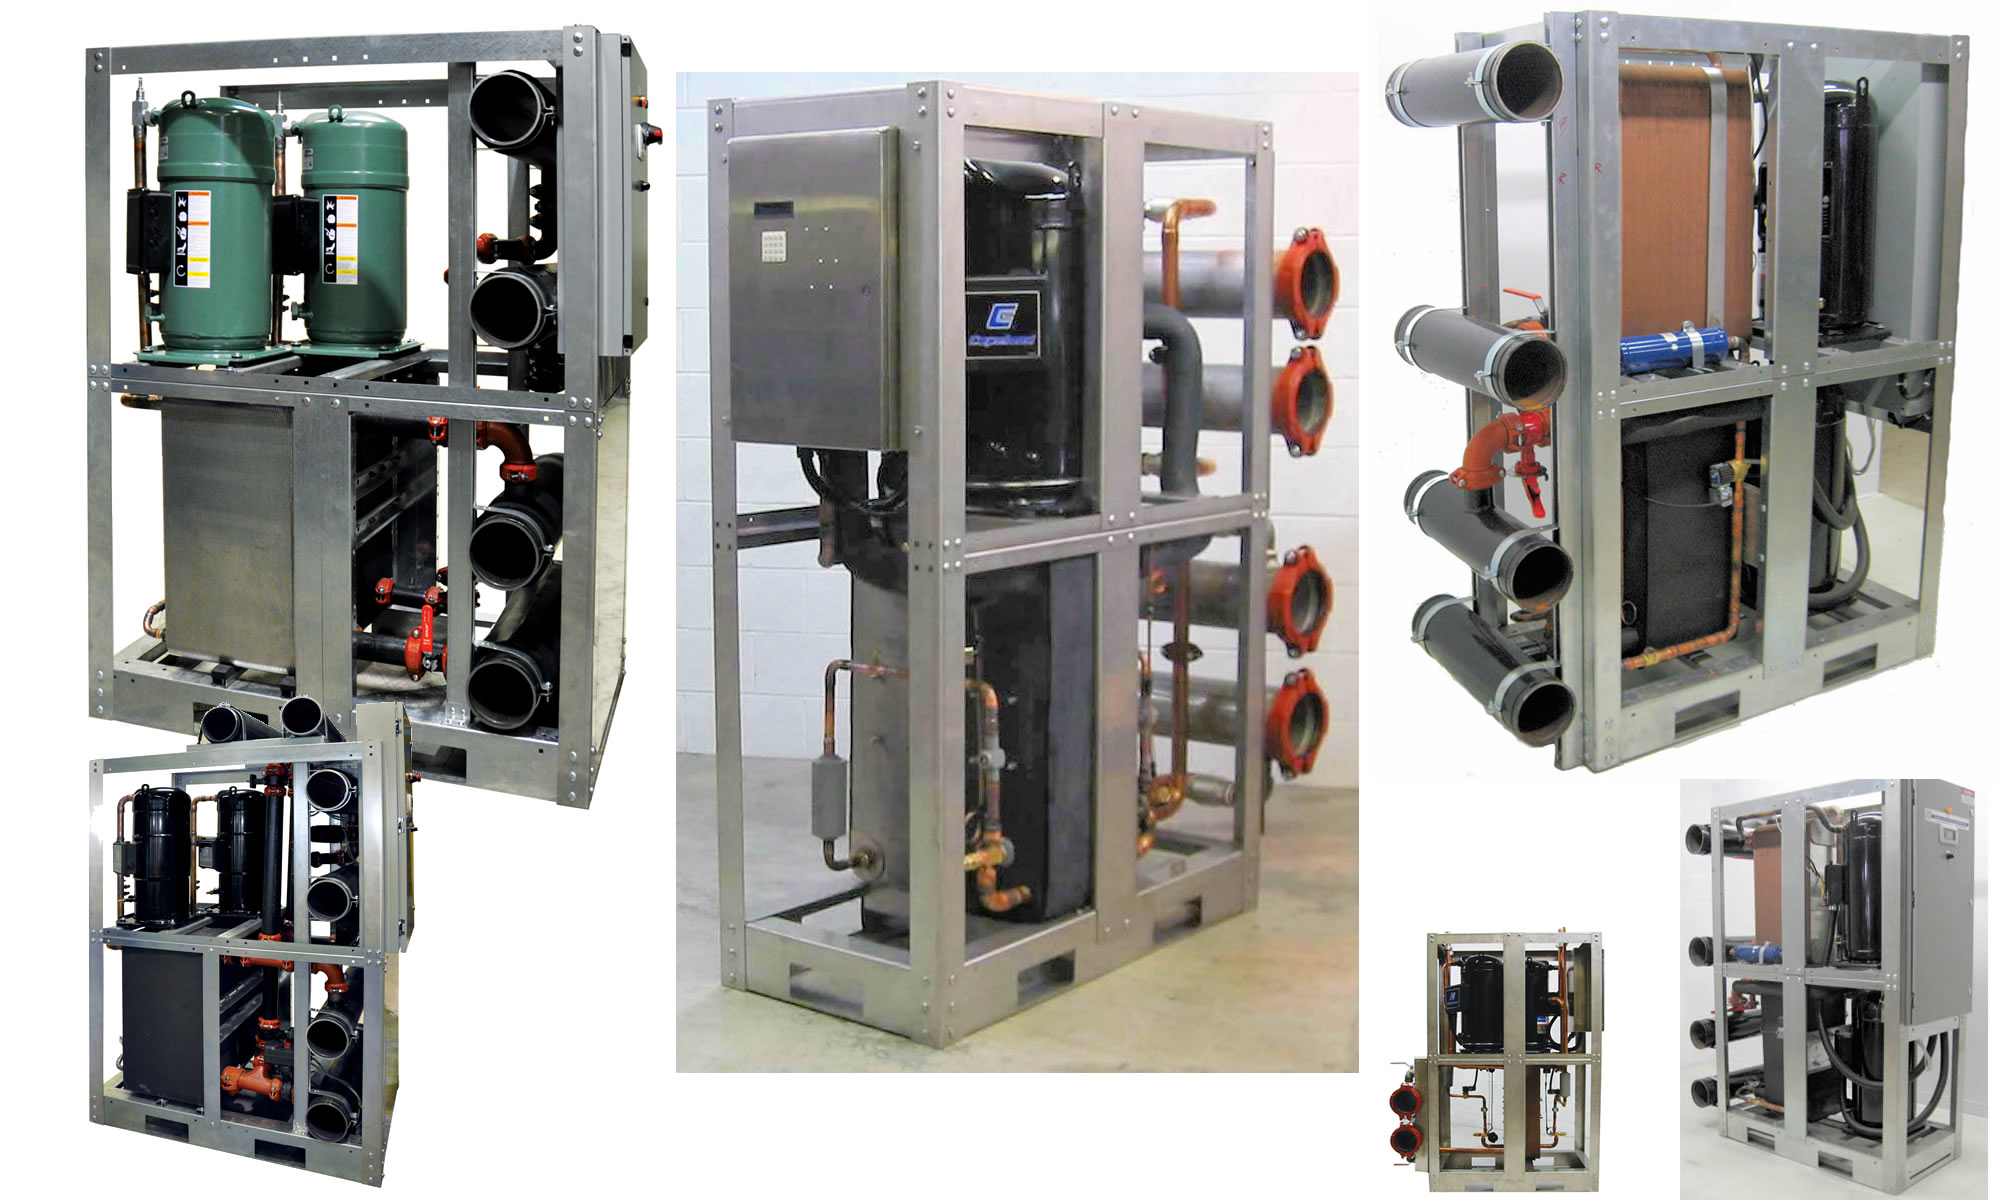 Water Cooled Central Chillers